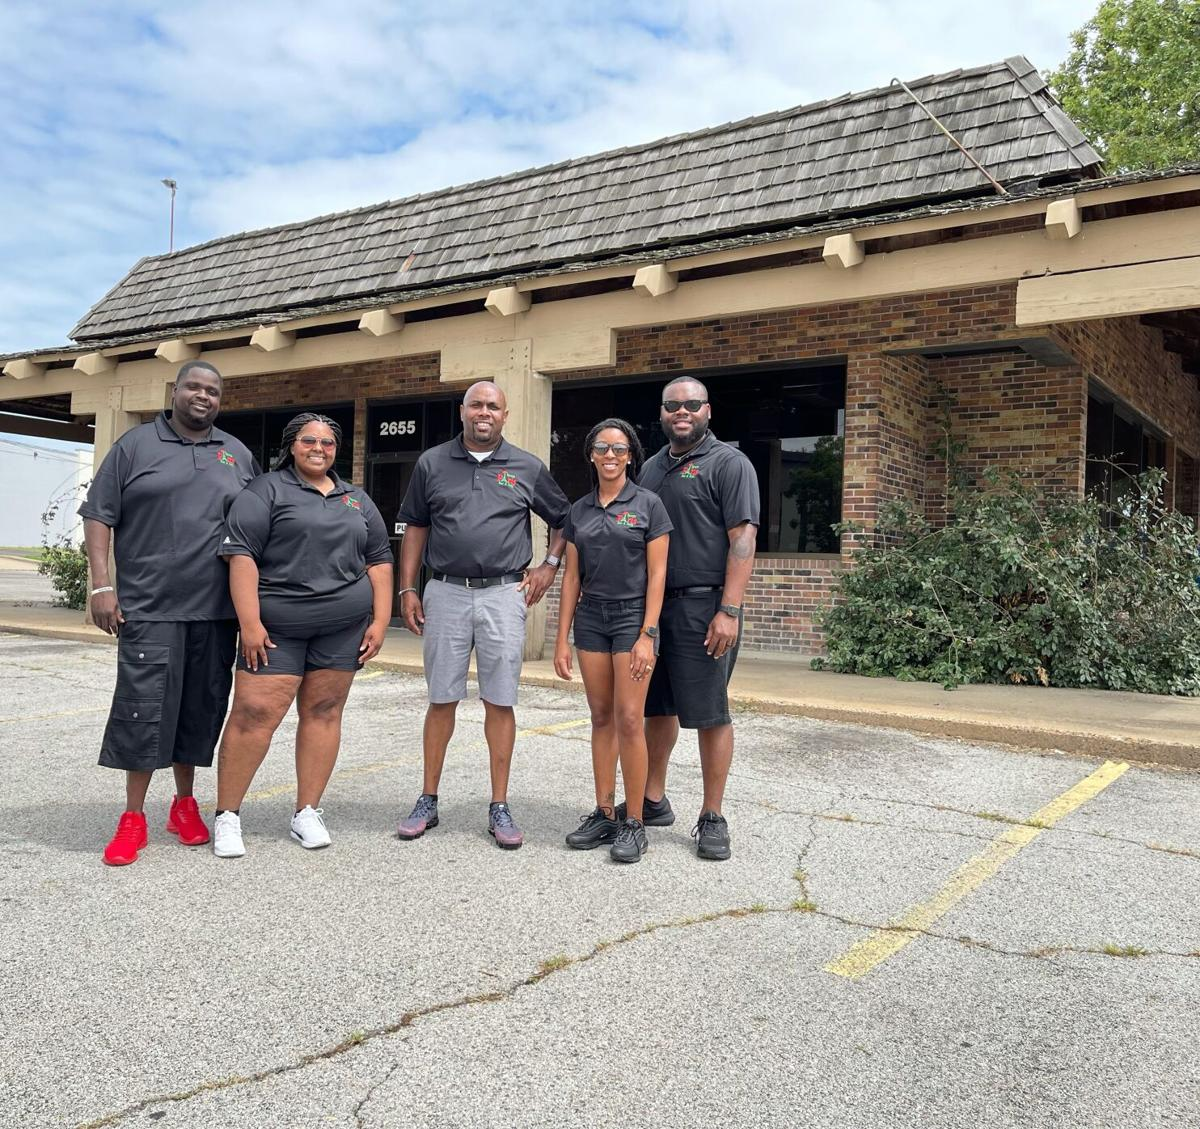 Ward's Restaurant to be converted to sports bar